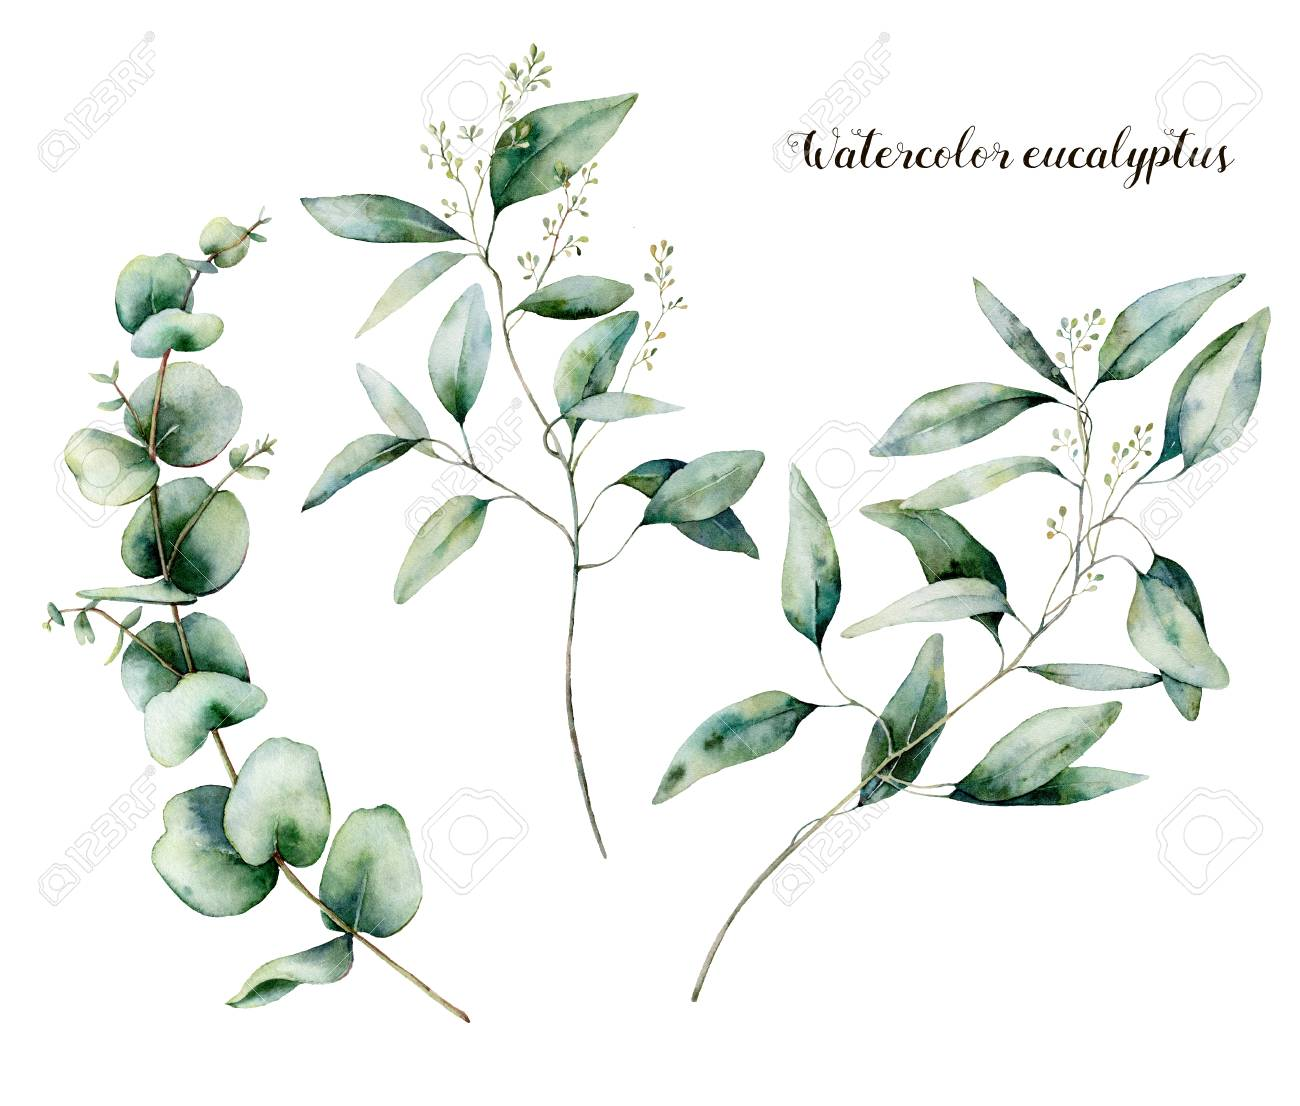 Watercolor seeded eucalyptus set. Hand painted eucalyptus branch and leaves isolated on white background. Floral illustration for design, print, fabric or background. - 118928100